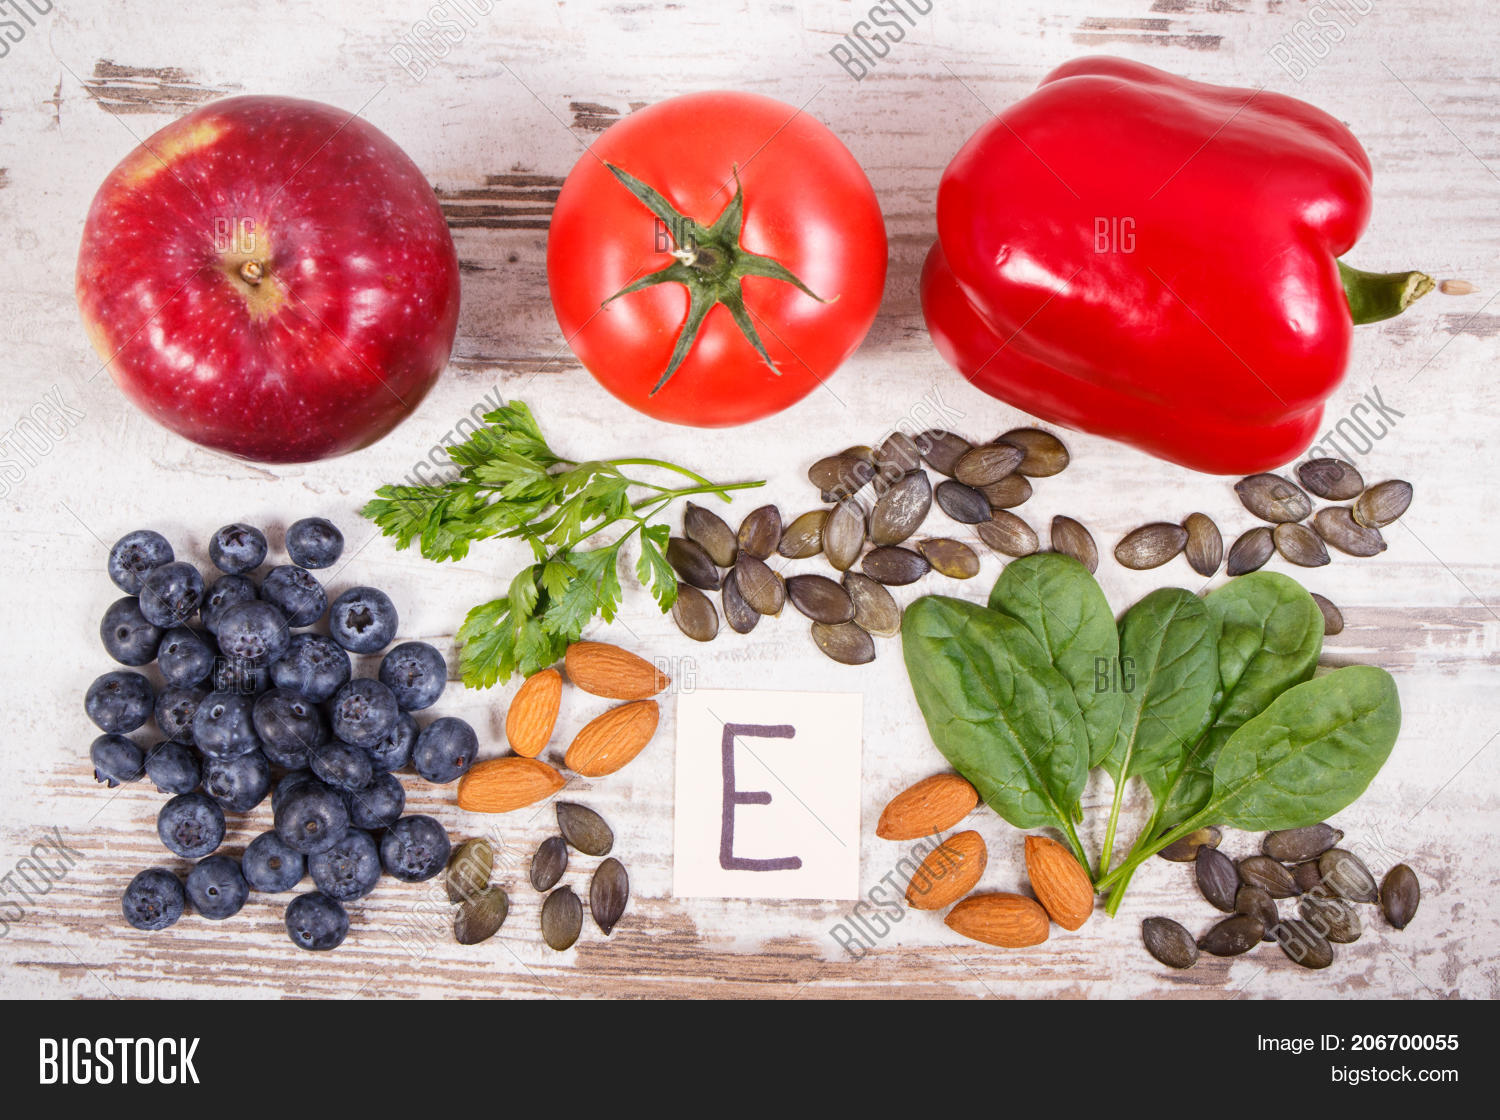 Fruits And Vegetables Containing Vitamin E Ingredients containing vitamin e image photo bigstock ingredients containing vitamin e natural minerals and dietary fiber healthy nutrition workwithnaturefo